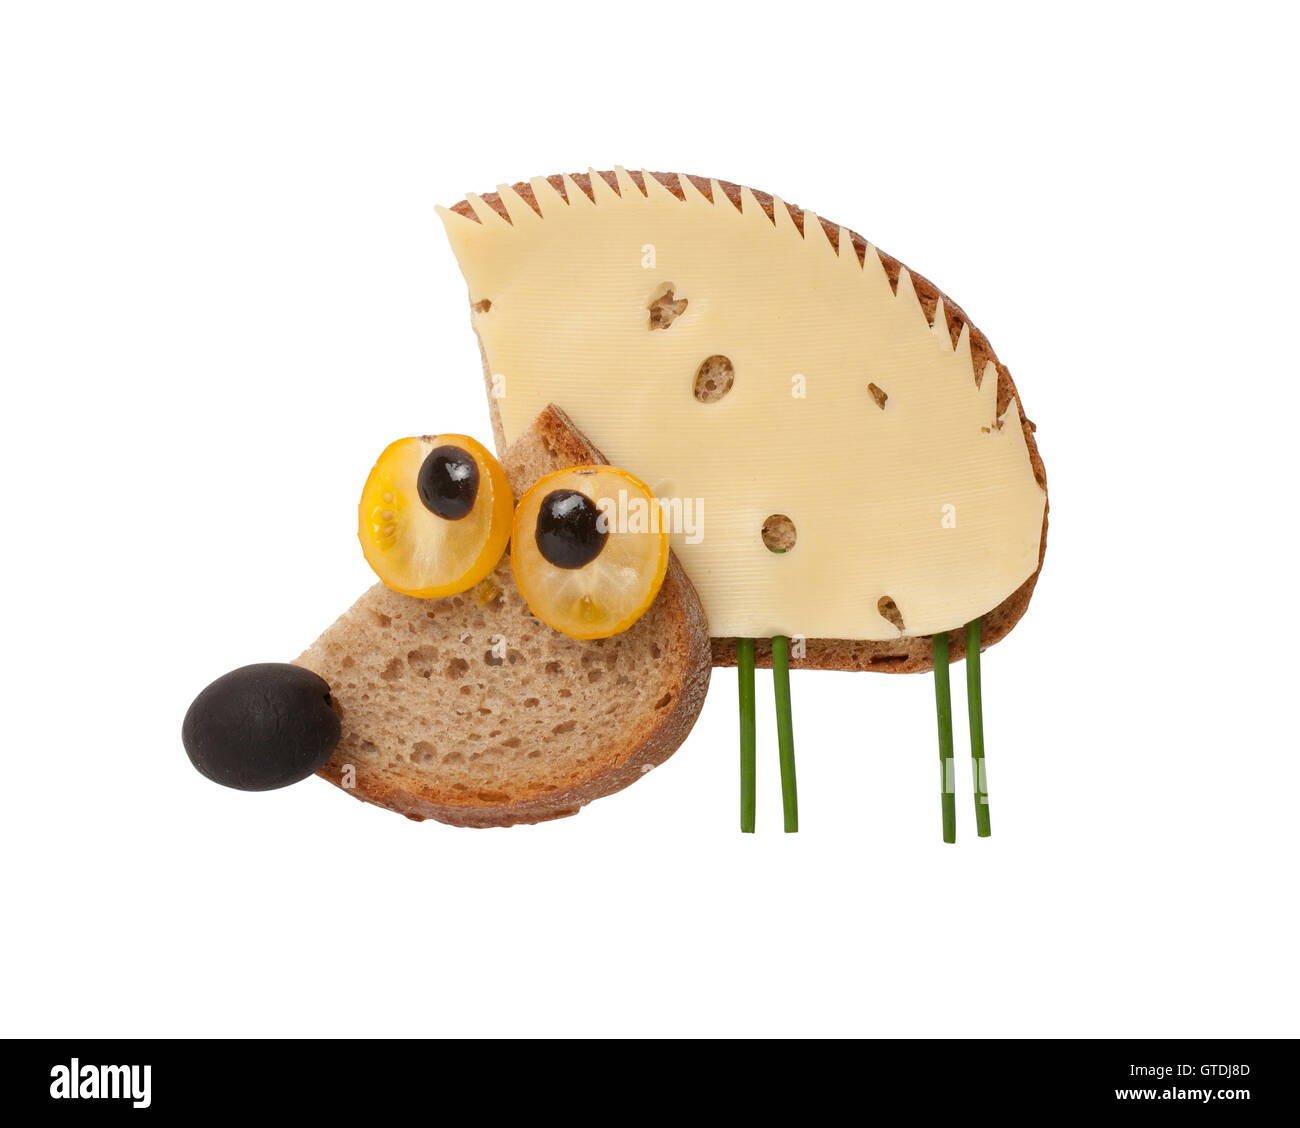 Funny hedgehog made of bread and cheese on isolated background - Stock Image